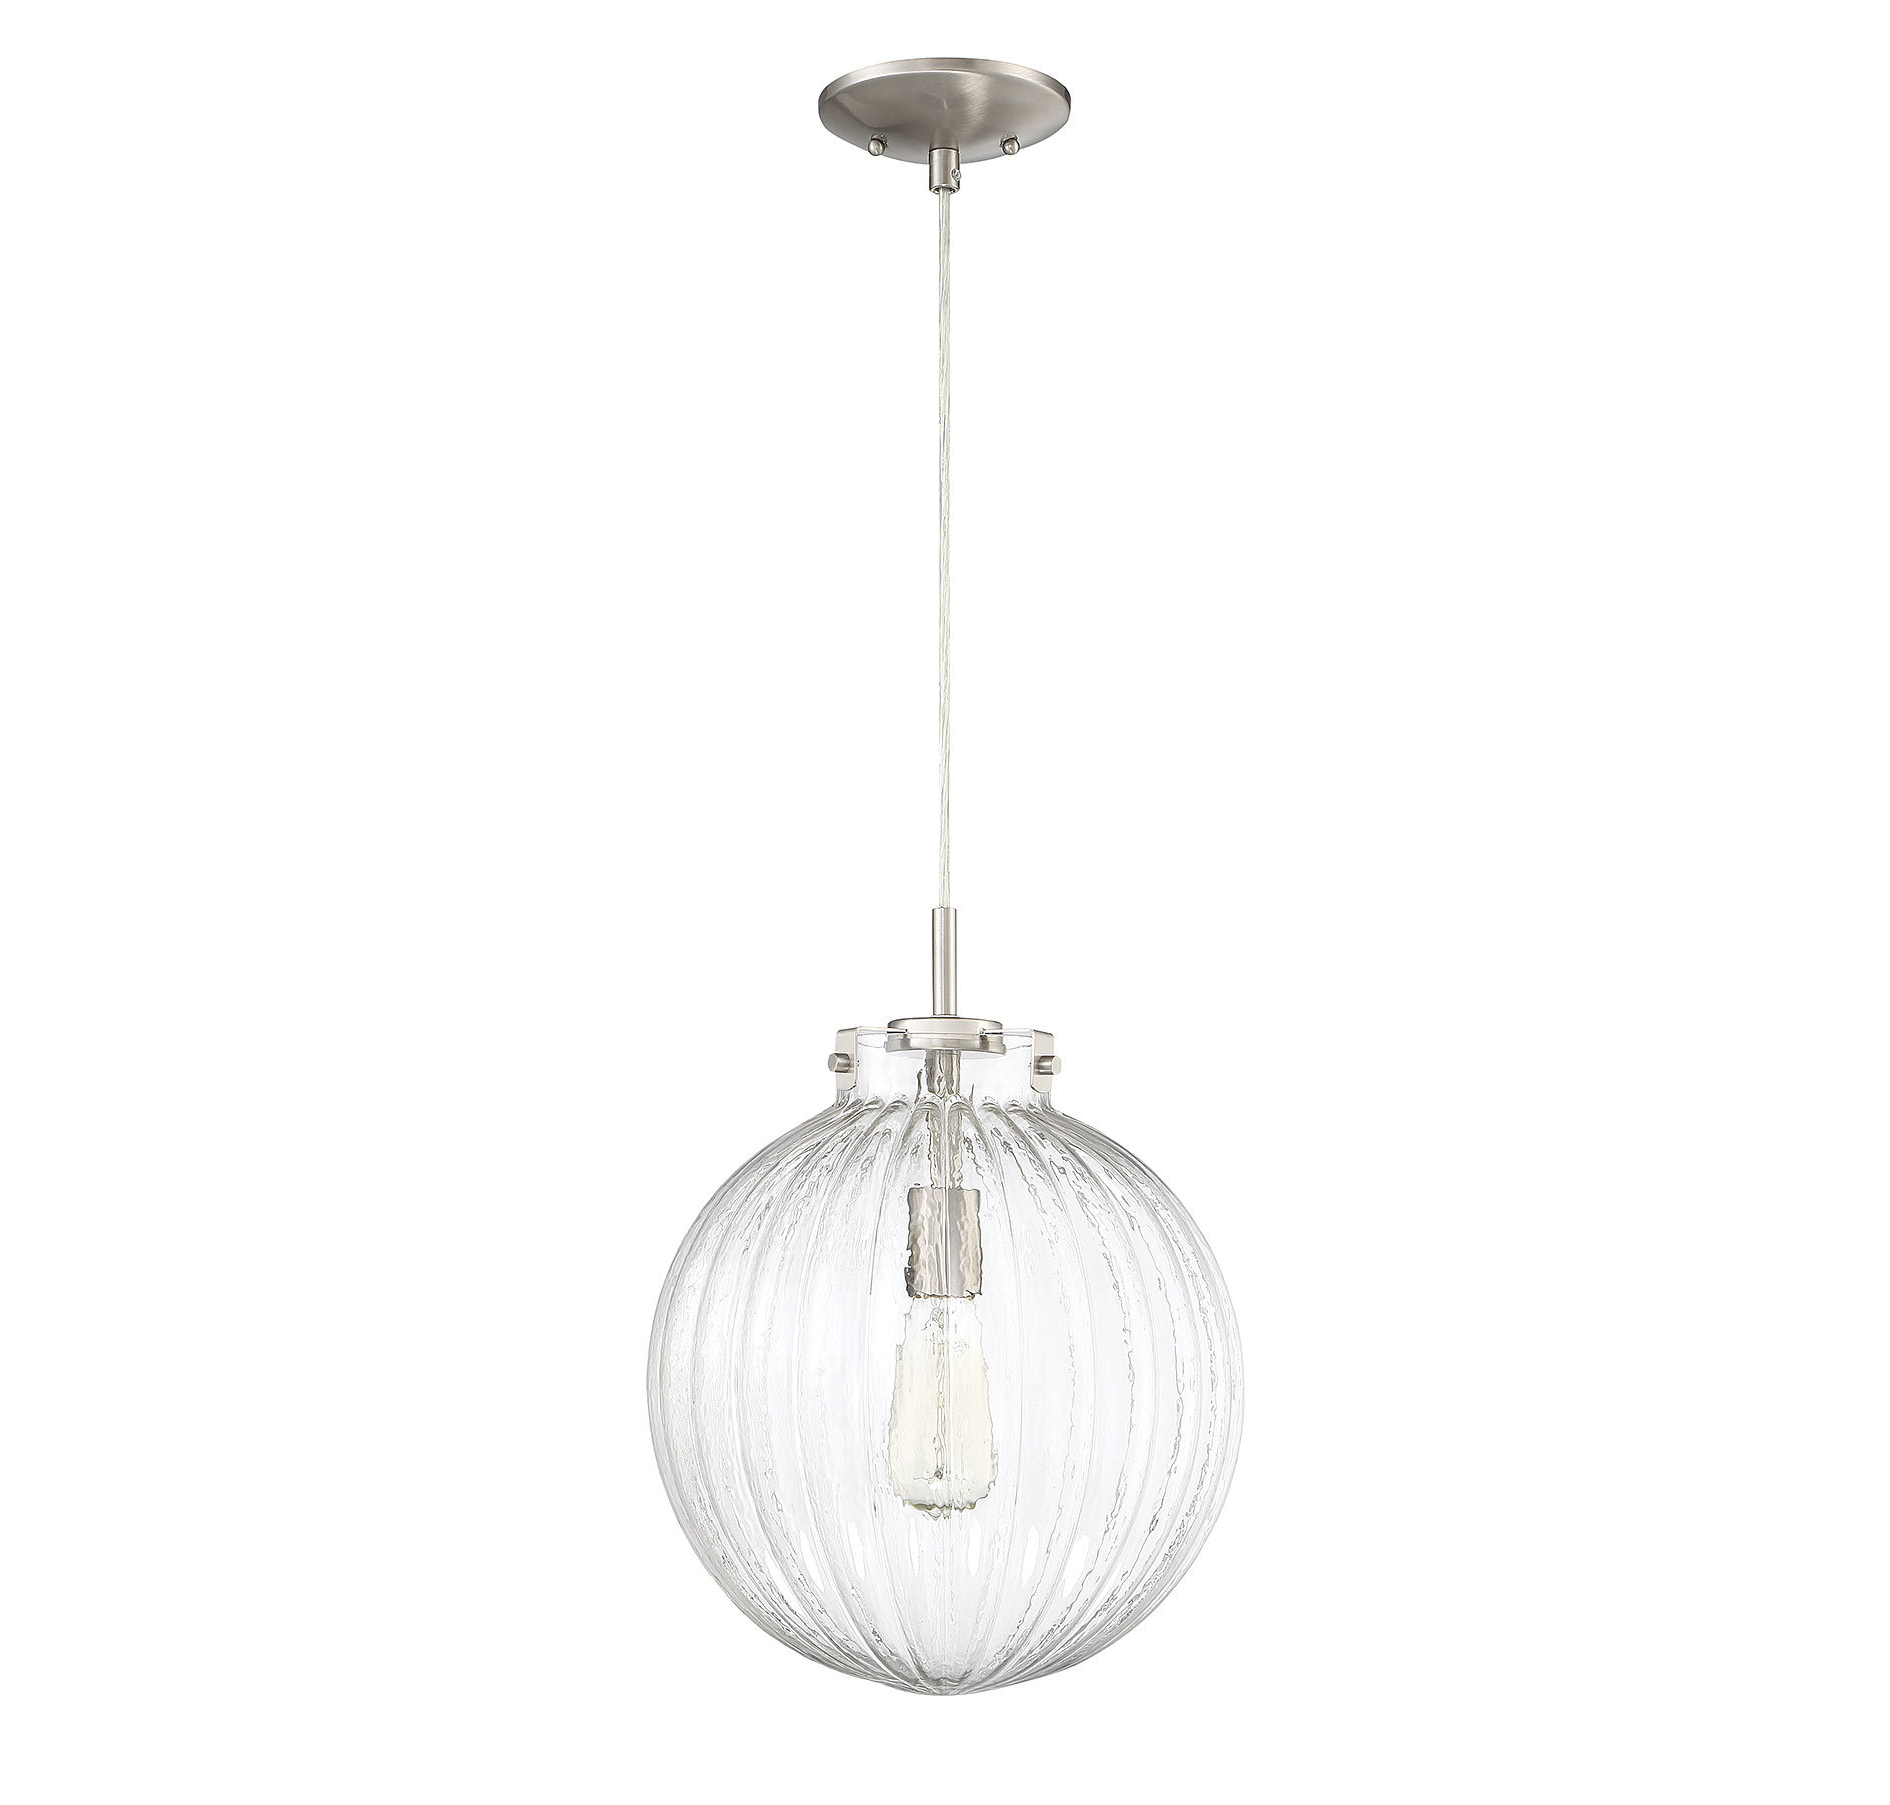 Latest Nevels 1 Light Single Globe Pendant For Cayden 1 Light Single Globe Pendants (View 7 of 20)